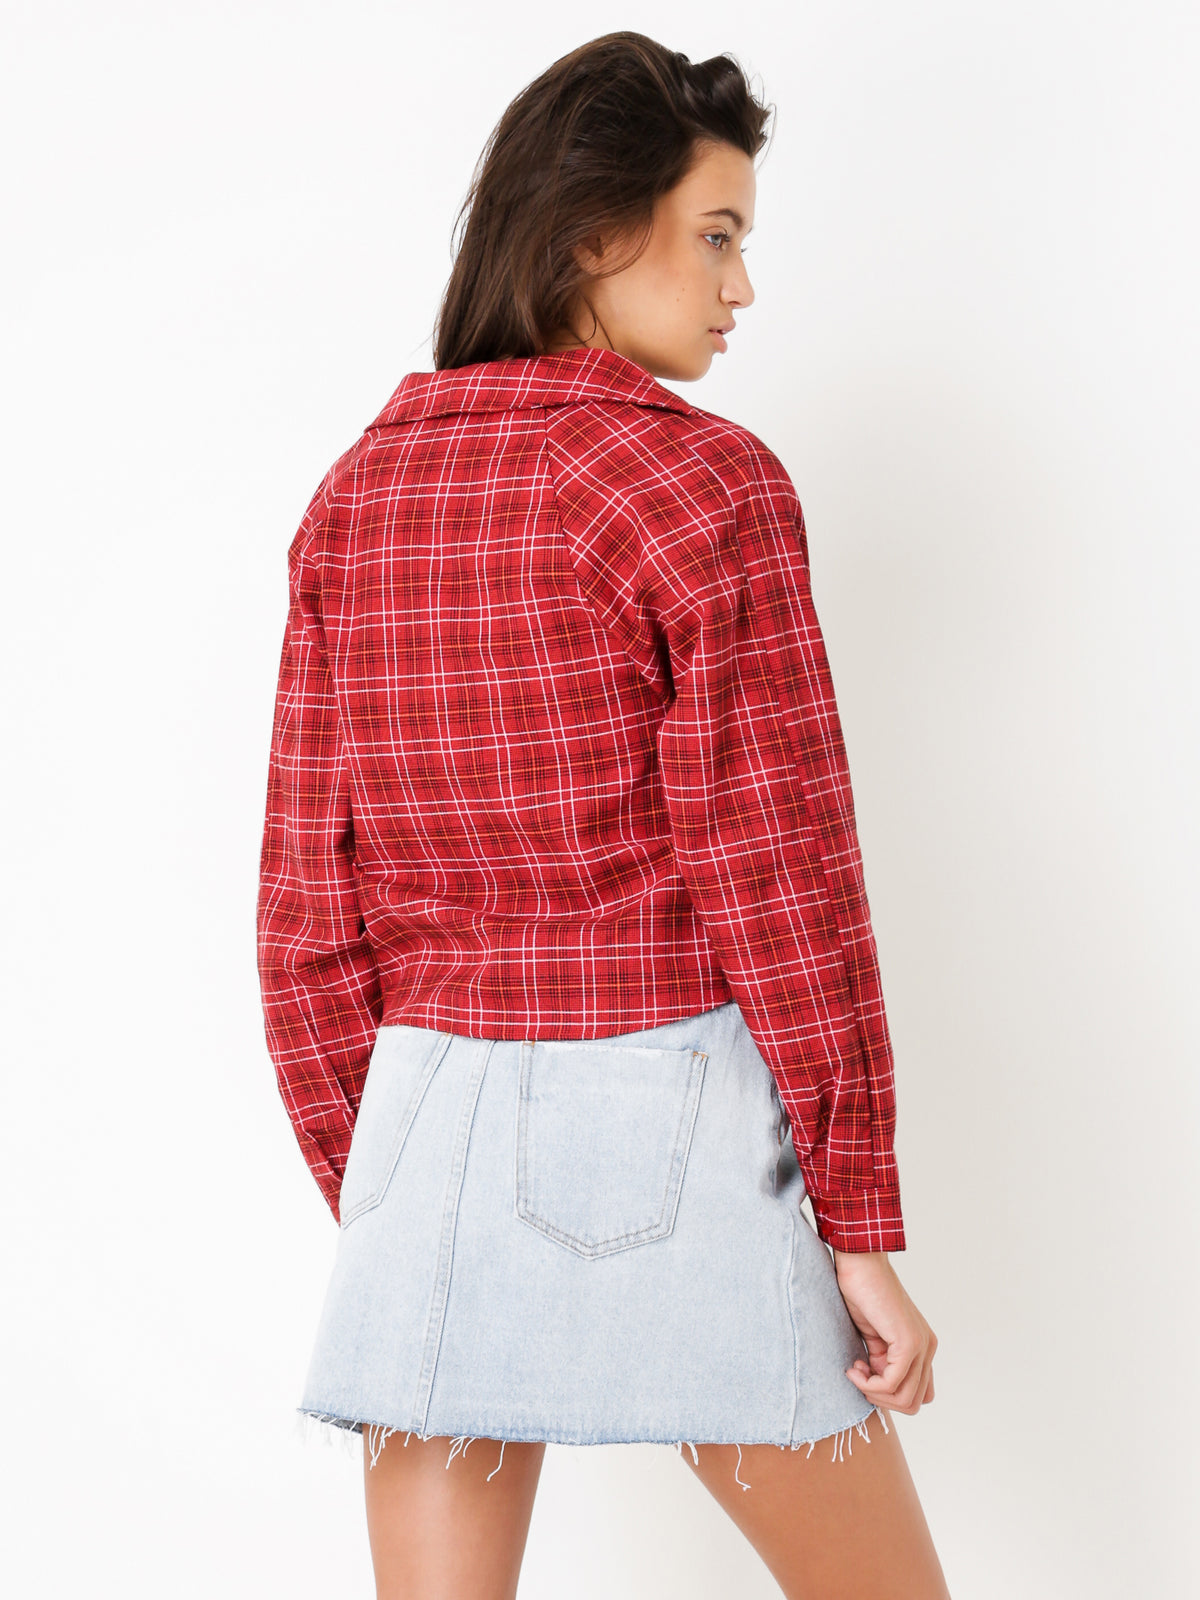 Mississippi Tie Front Top in Red Check